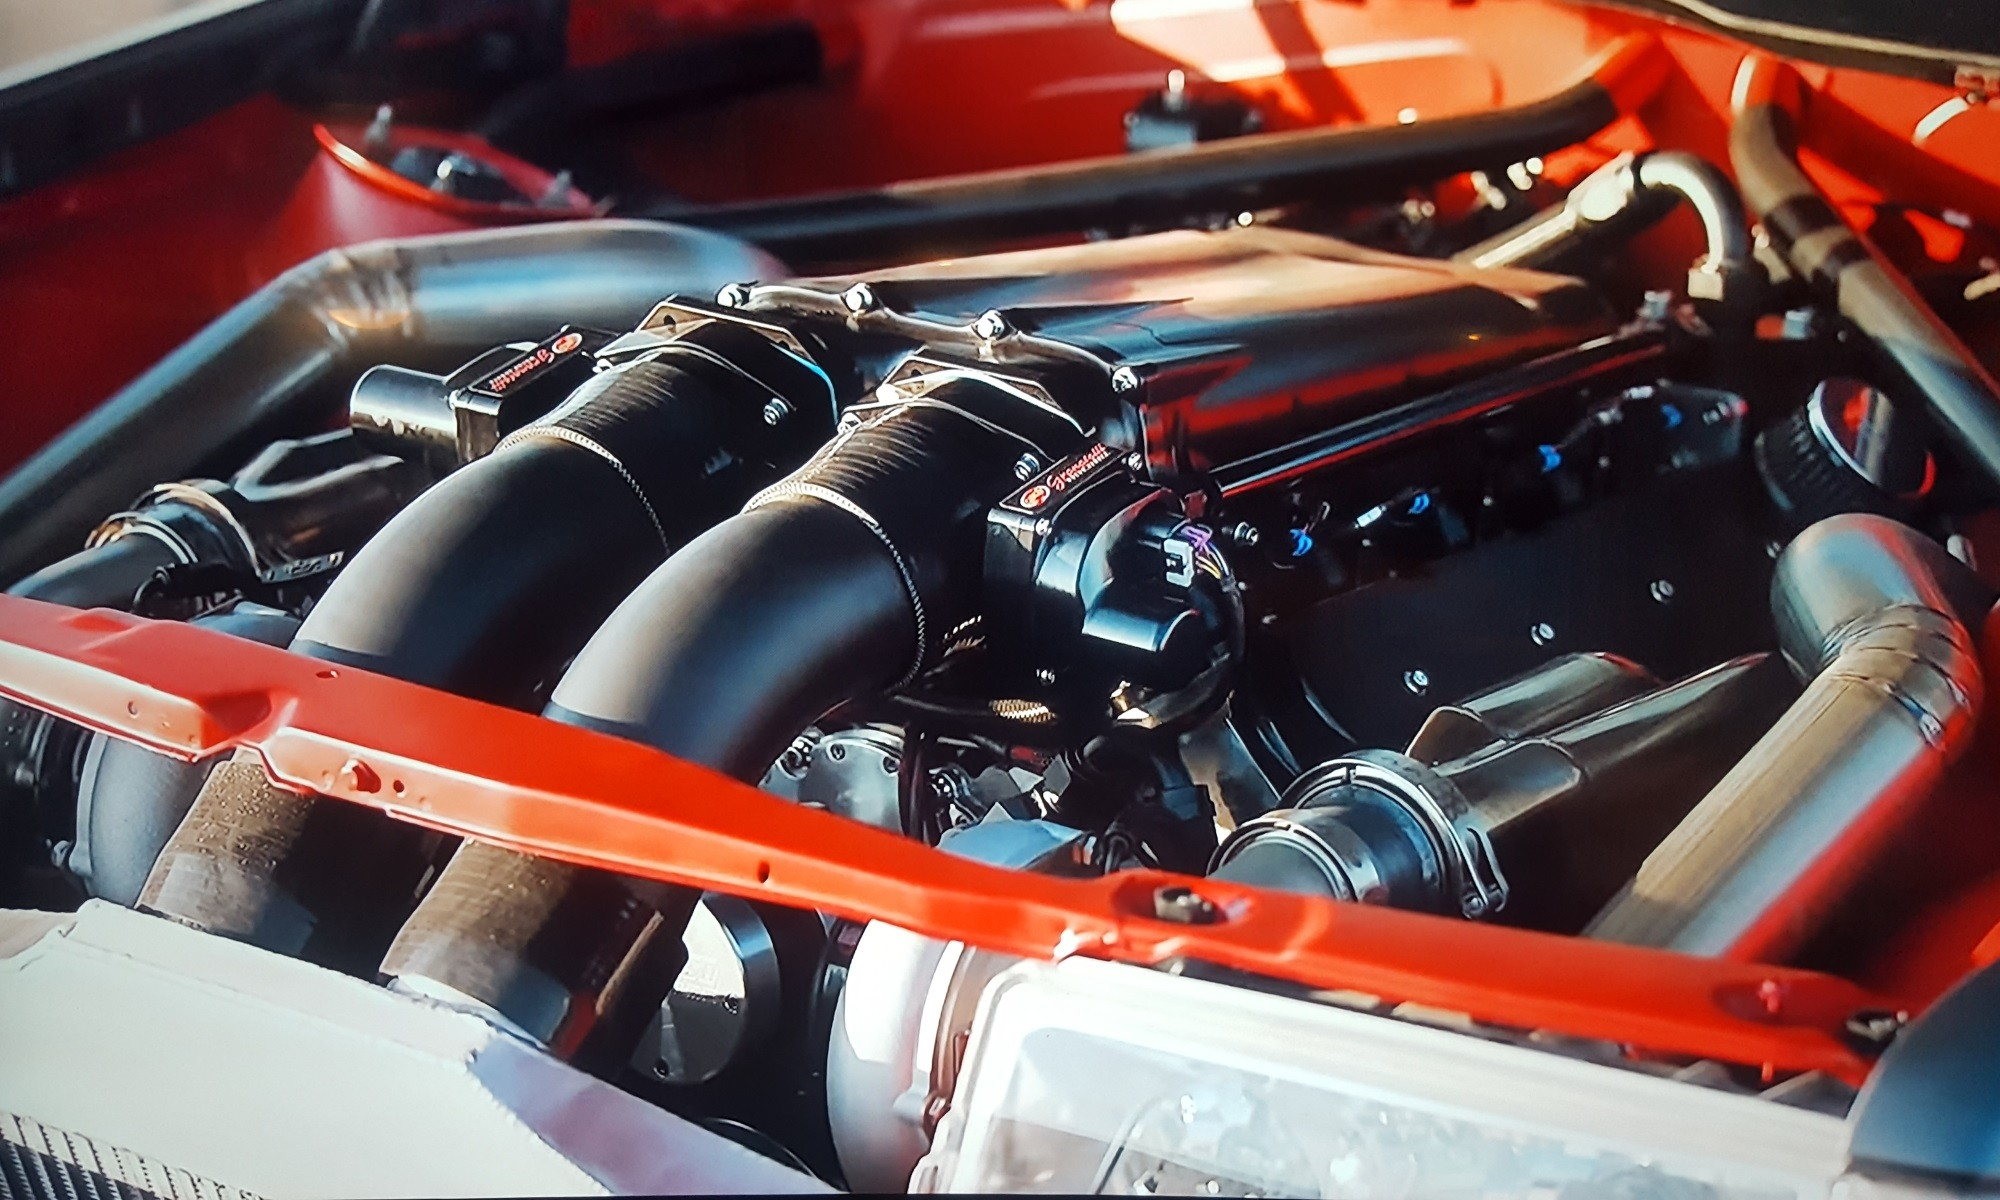 V8TT Mercedes 190E Evo engine